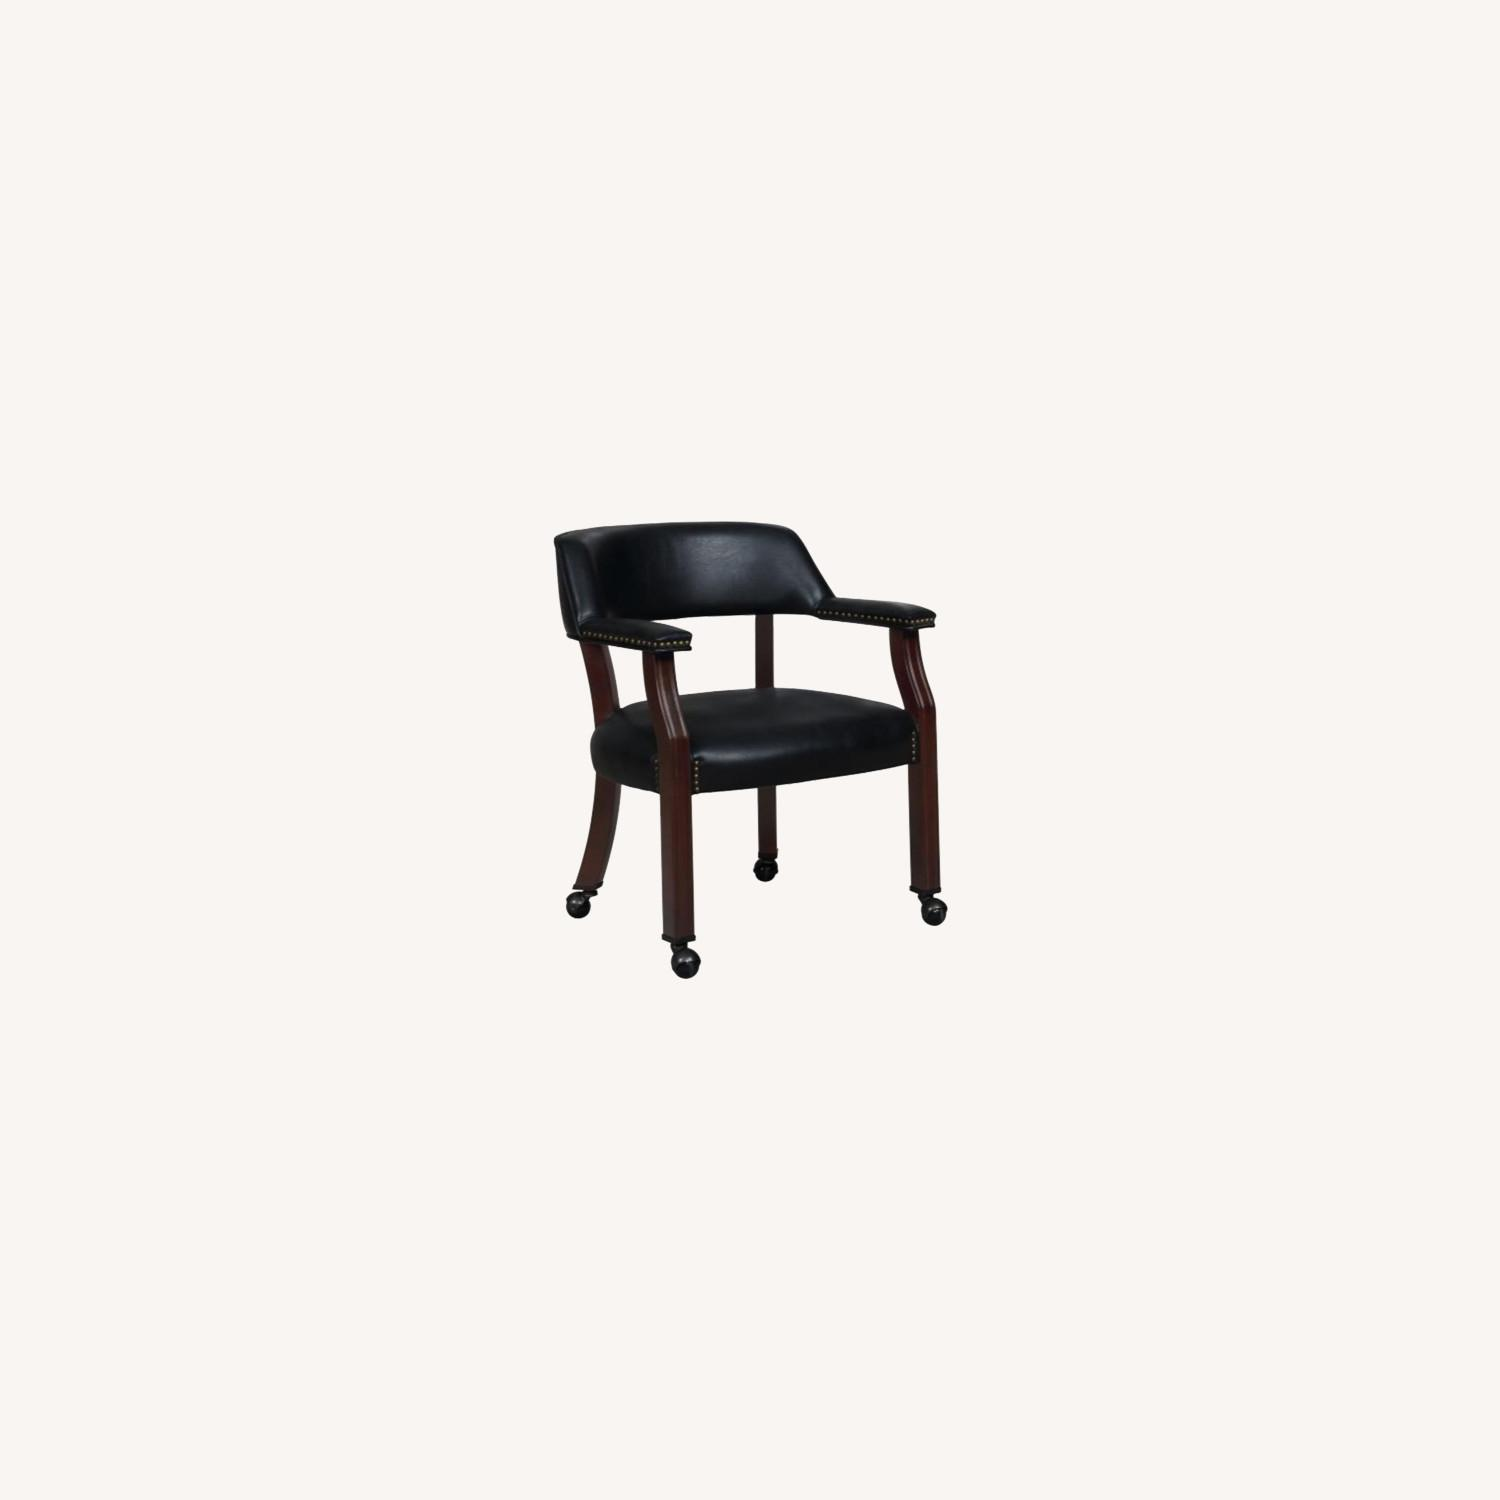 Guest Chair In Black Leatherette Upholstery - image-3